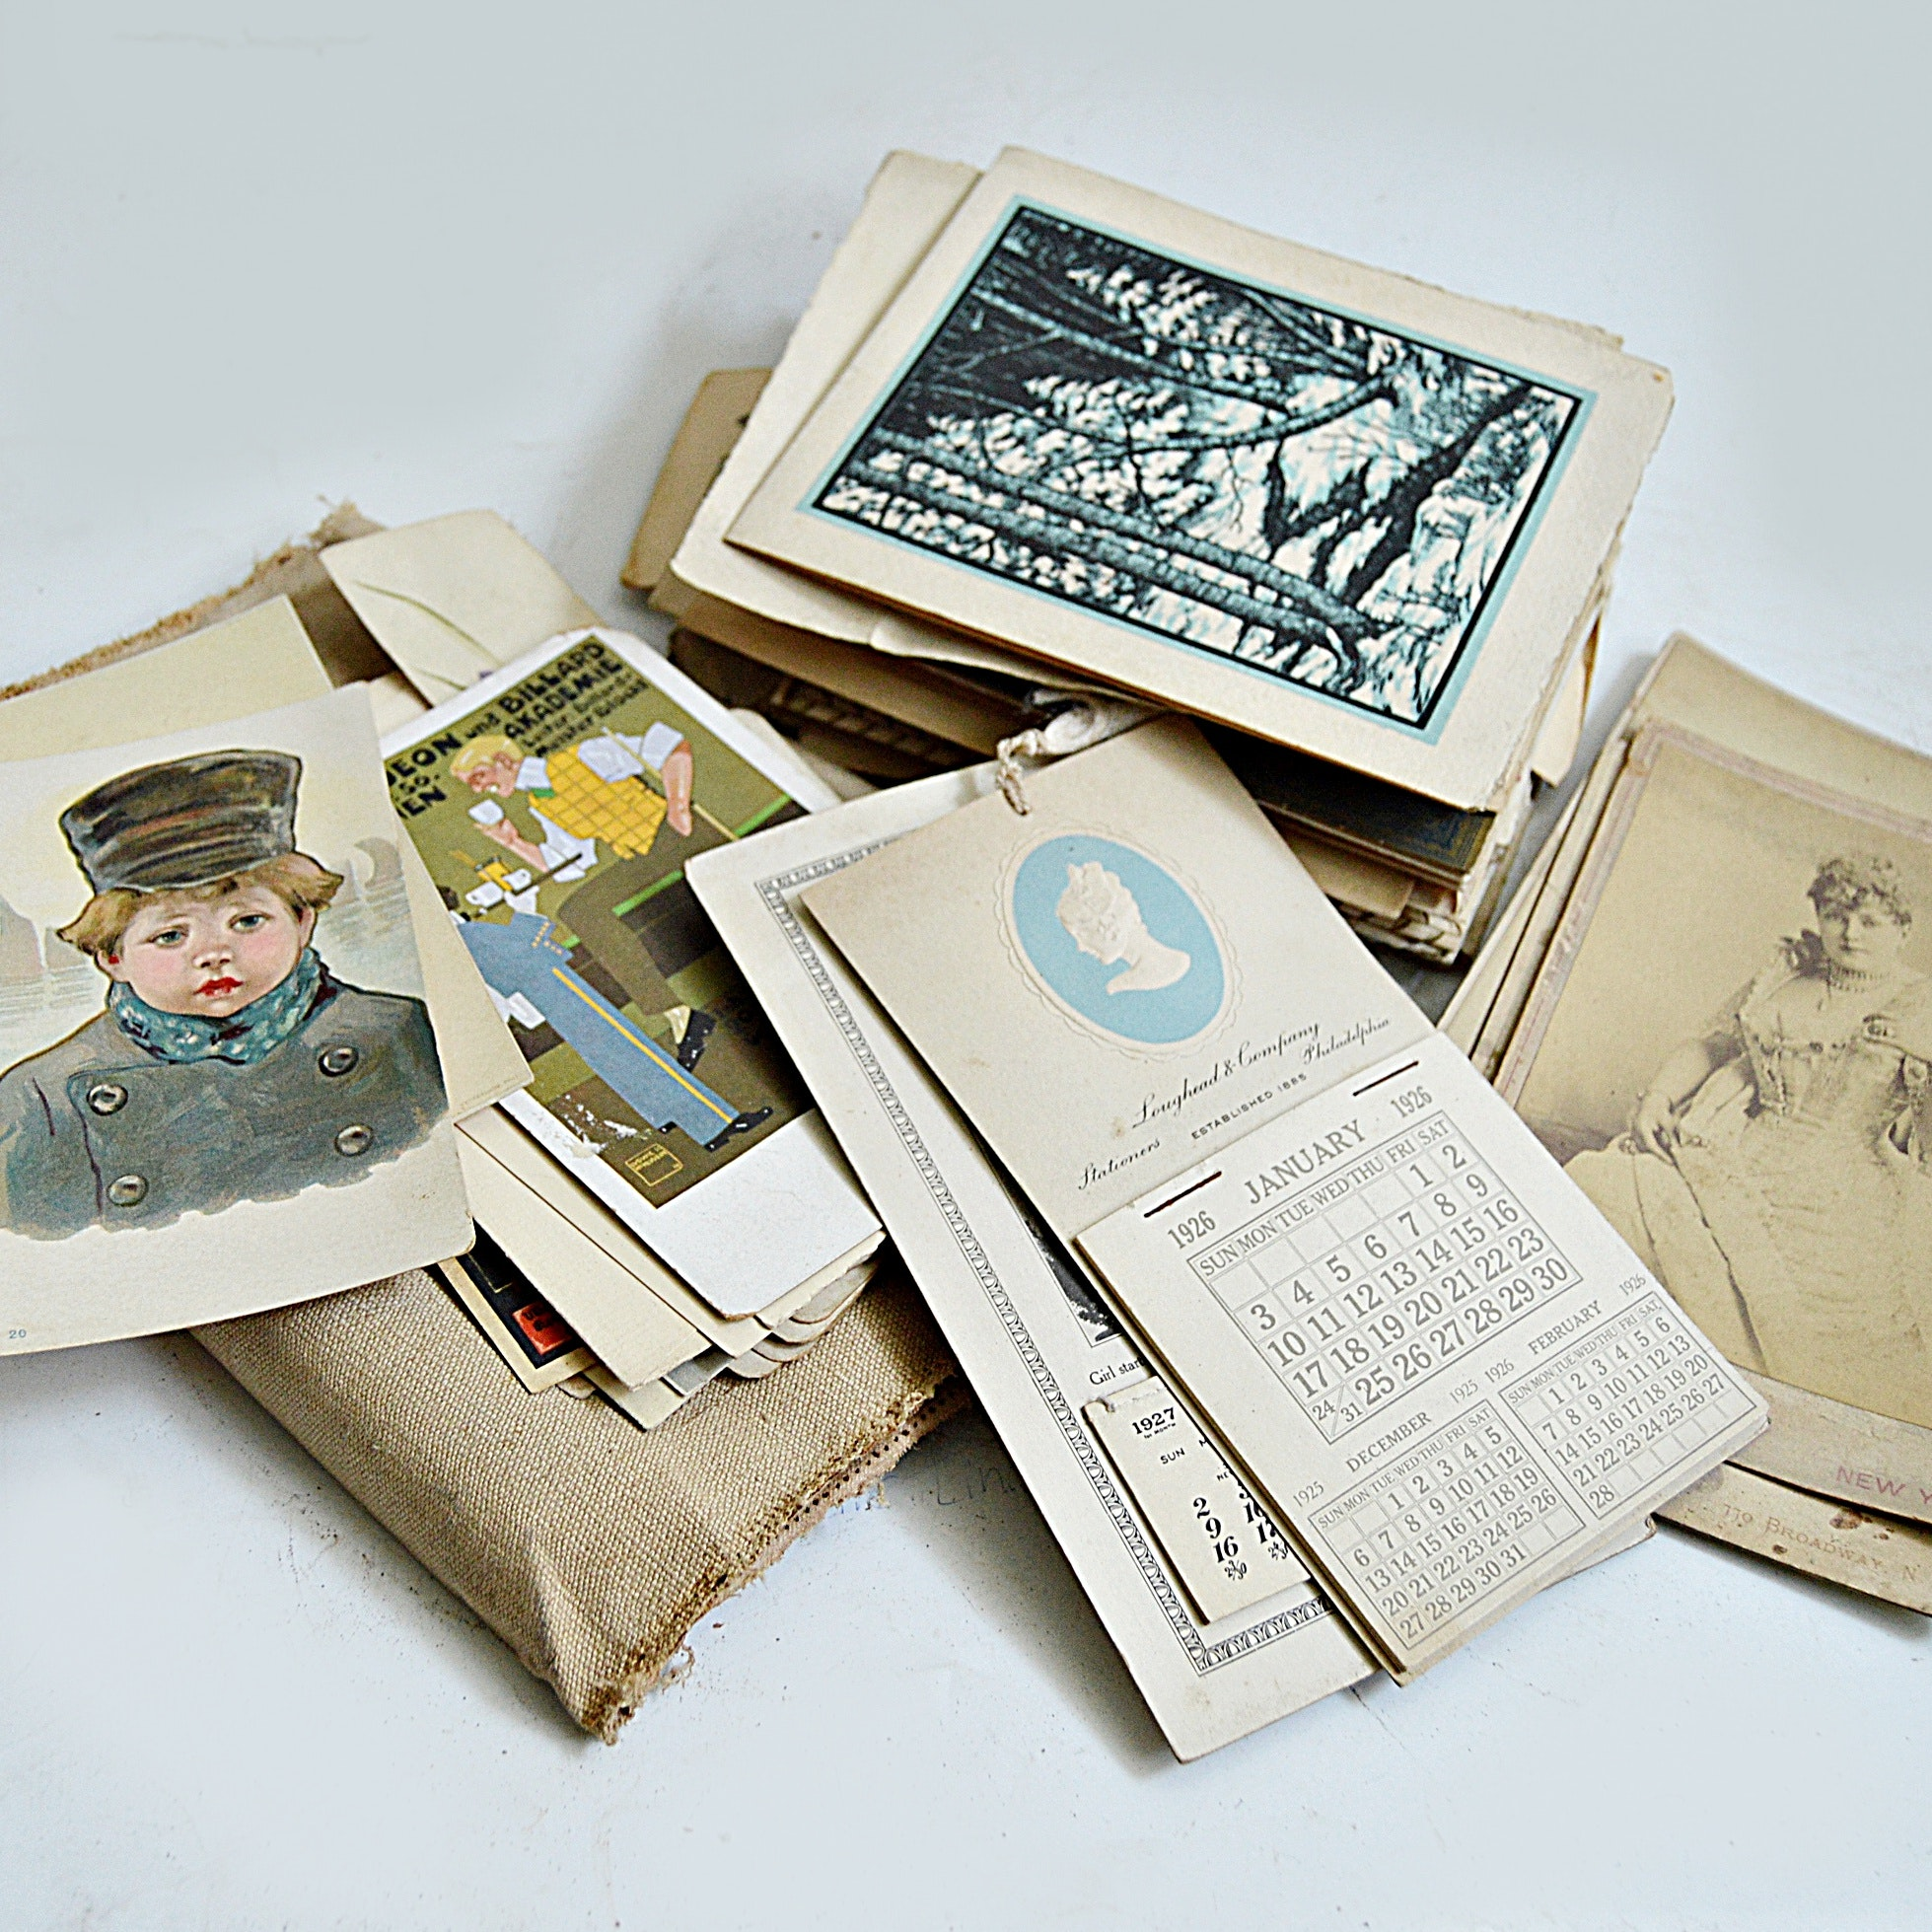 Vintage Ephemera with Etchings from Dixie Selden's Estate